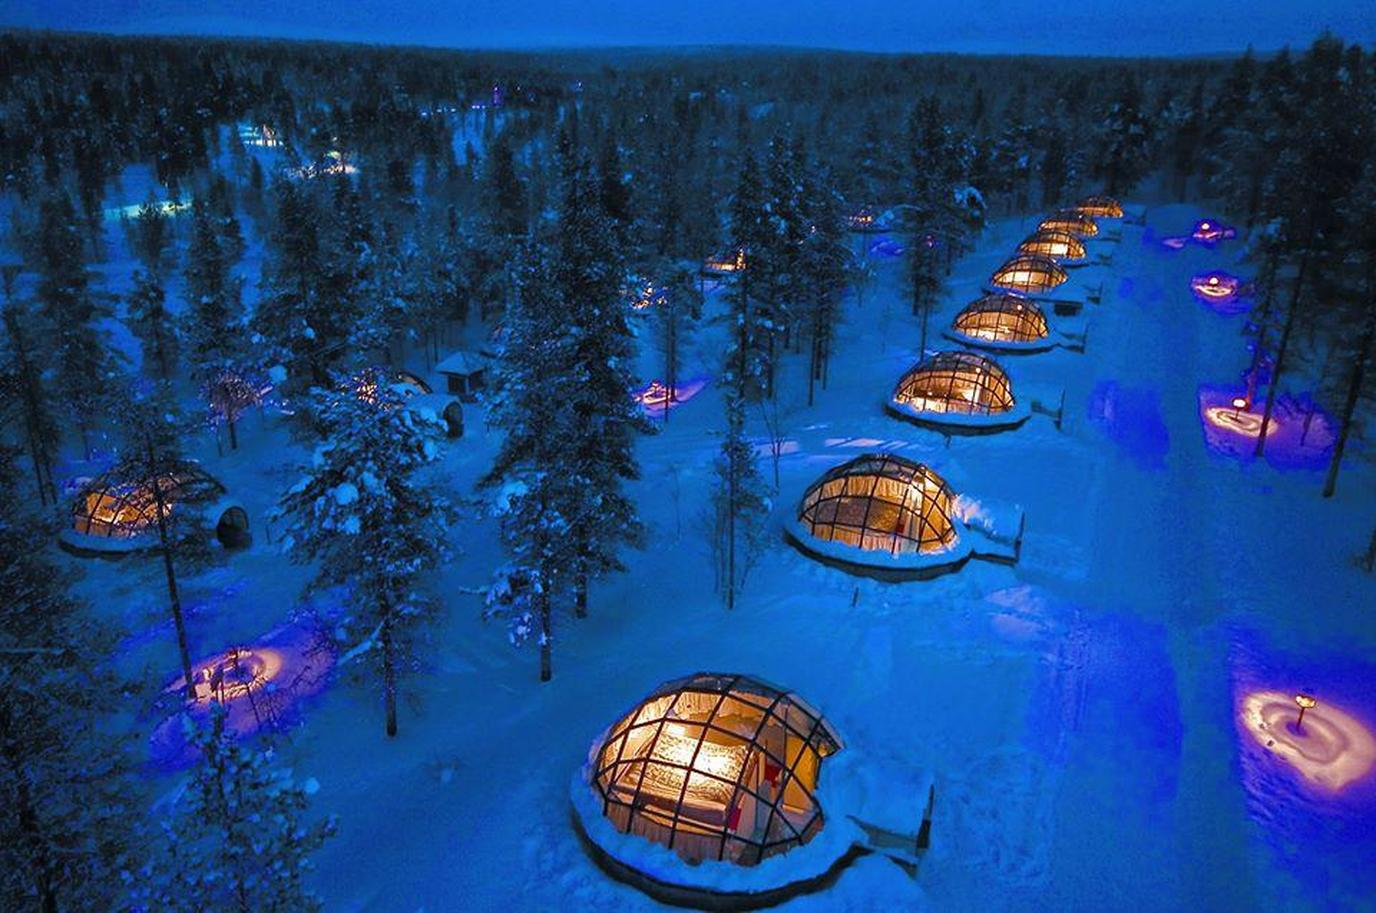 Stay in style at the dog-friendly Kakslauttanen Hotel in Finland.